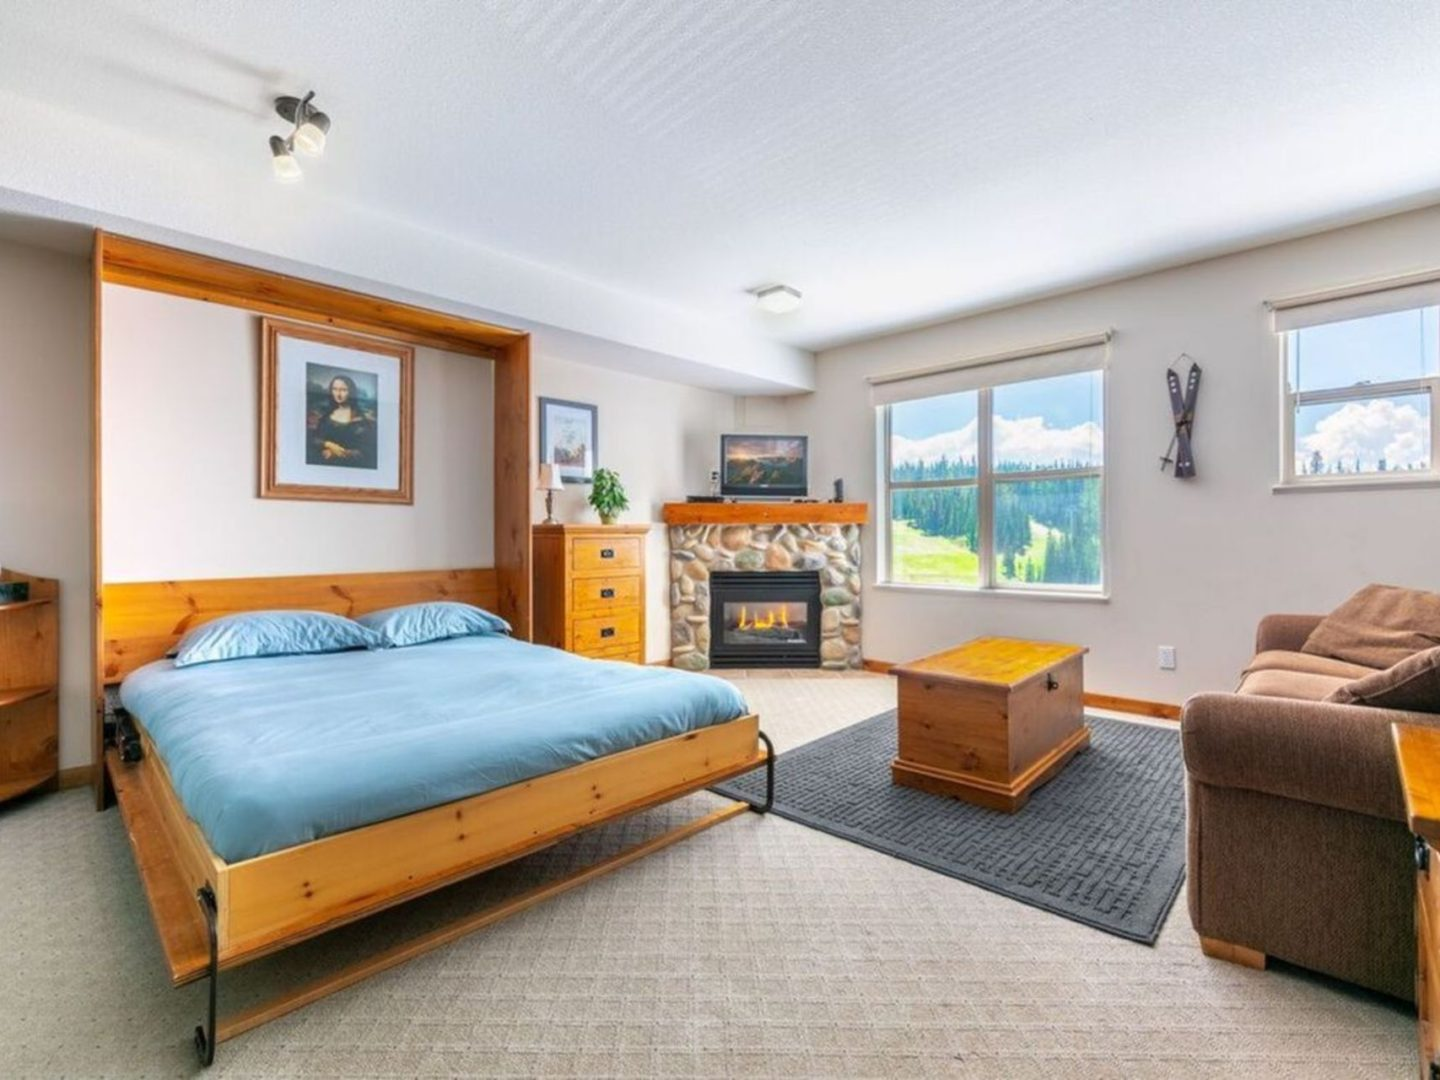 Silver Star Stays - Queen View